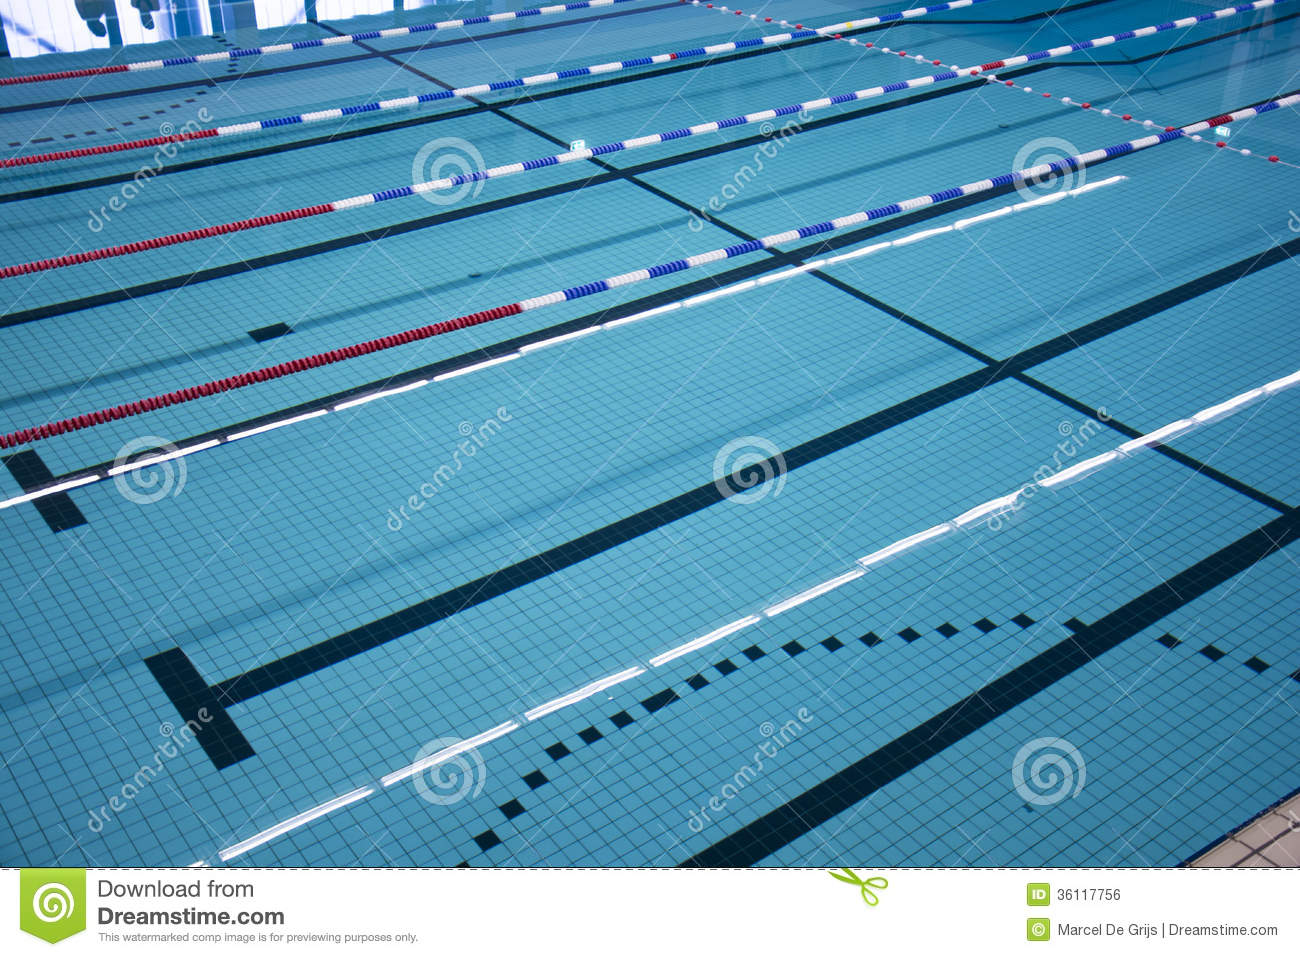 Olympic Swimming Pool Lanes wonderful olympic swimming pool lanes with lane markers throughout